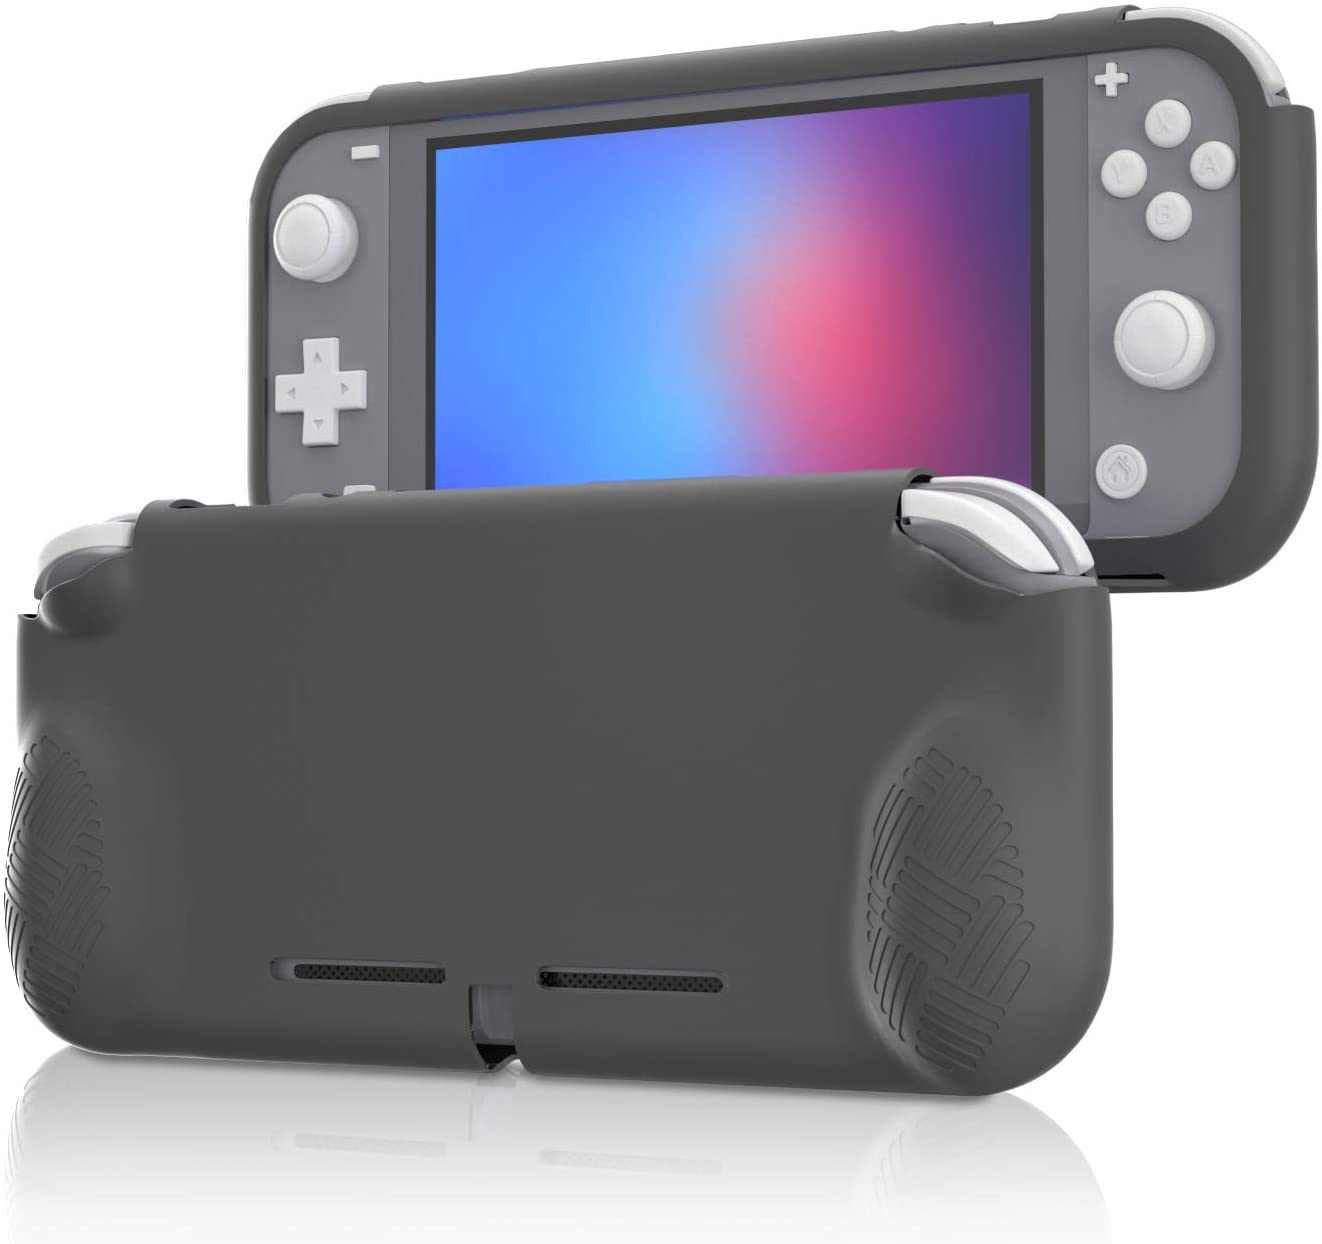 Grip Case Compatible with Switch lite, Protective Cover Case Compatible with Switch lite - Gray